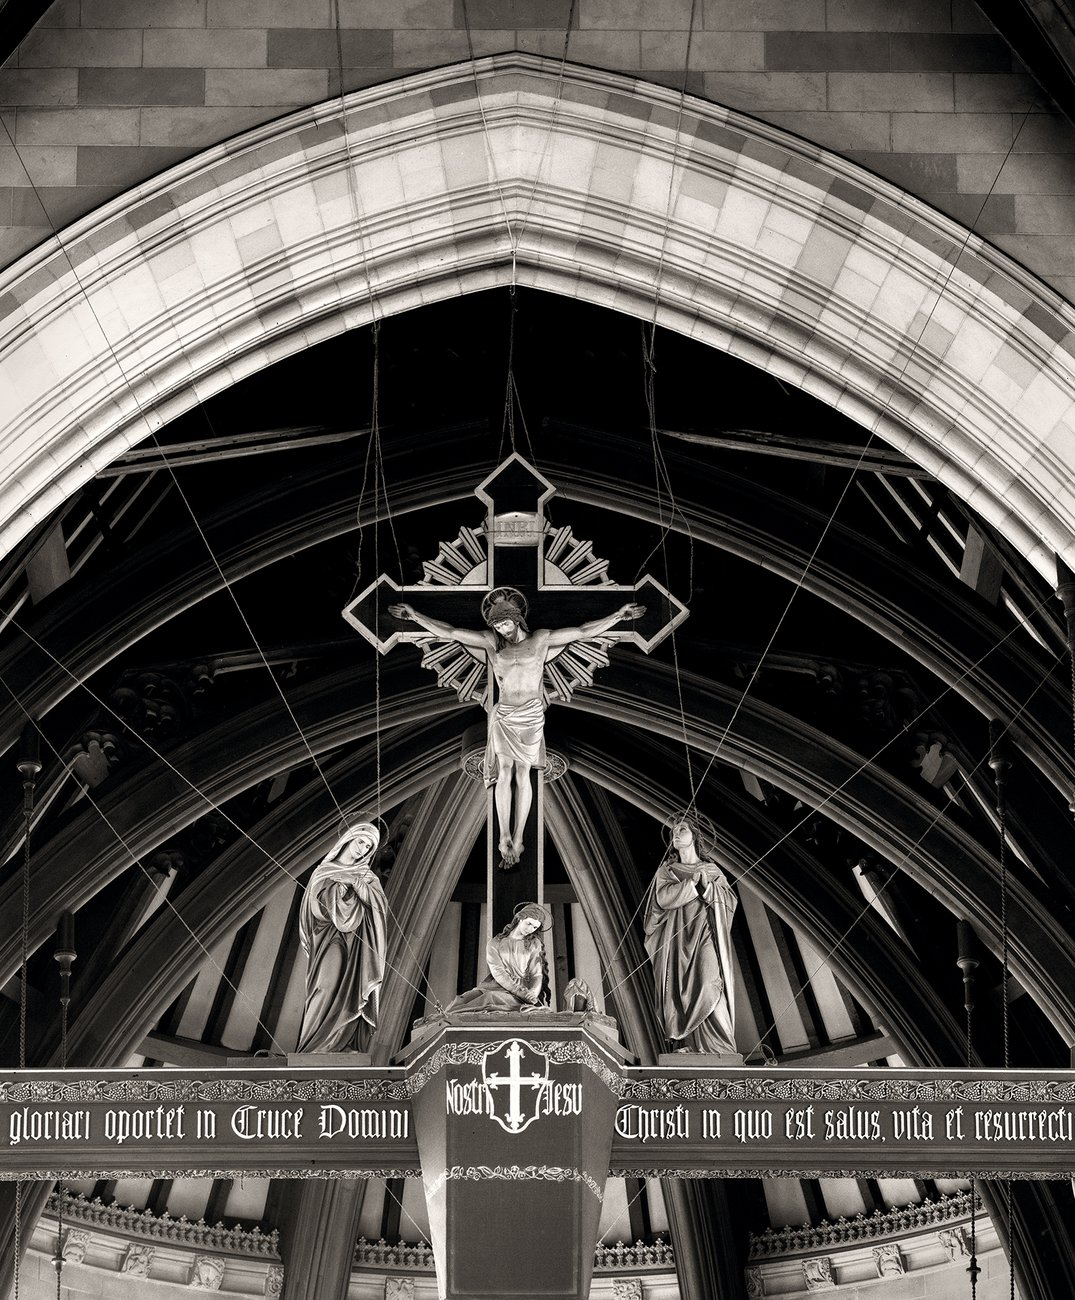 black and white photograph of a cross in a Church